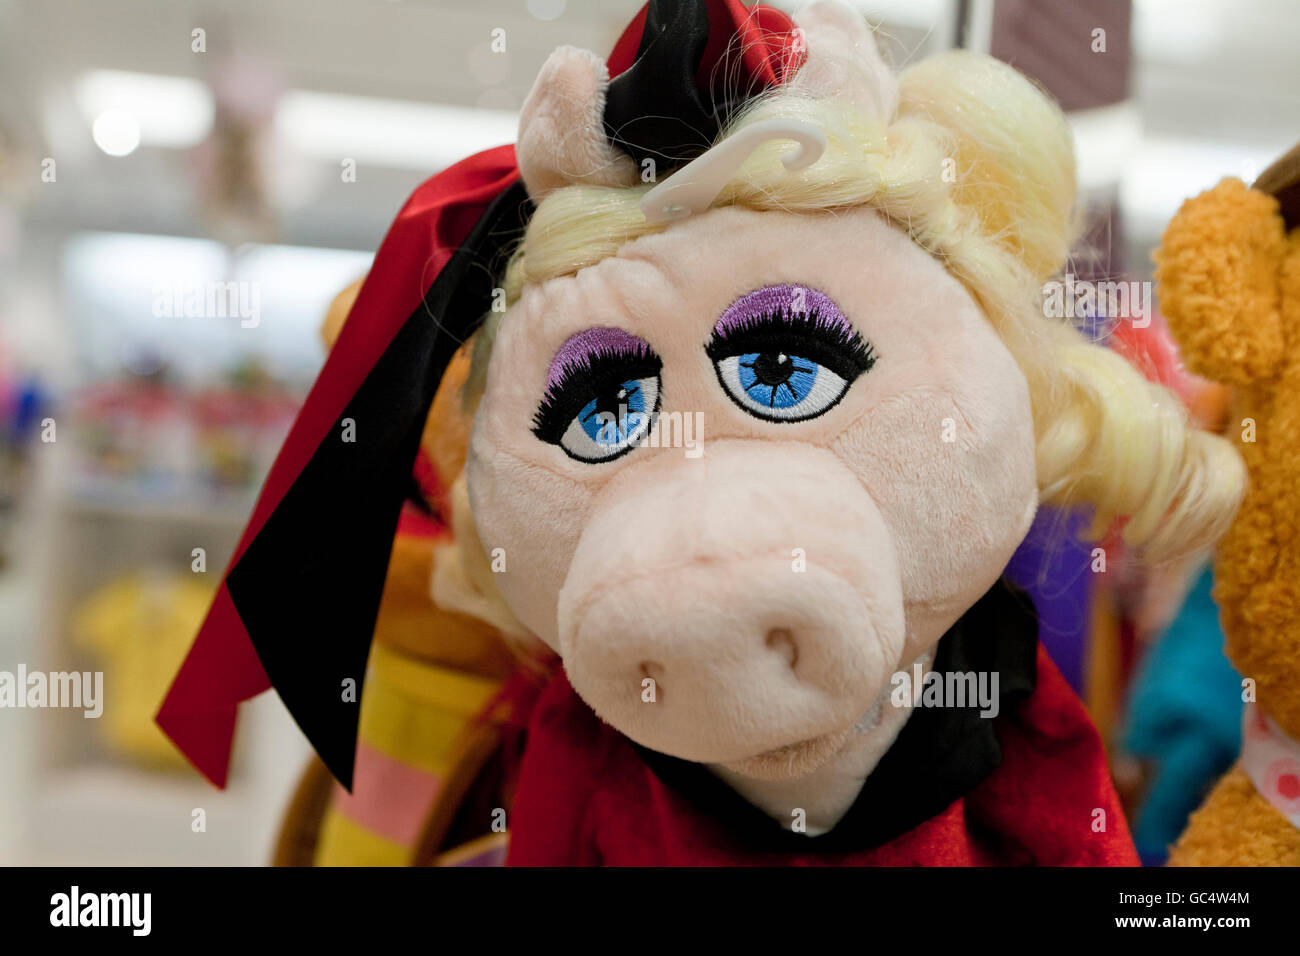 Miss Piggy hand puppet at toy store - USA - Stock Image